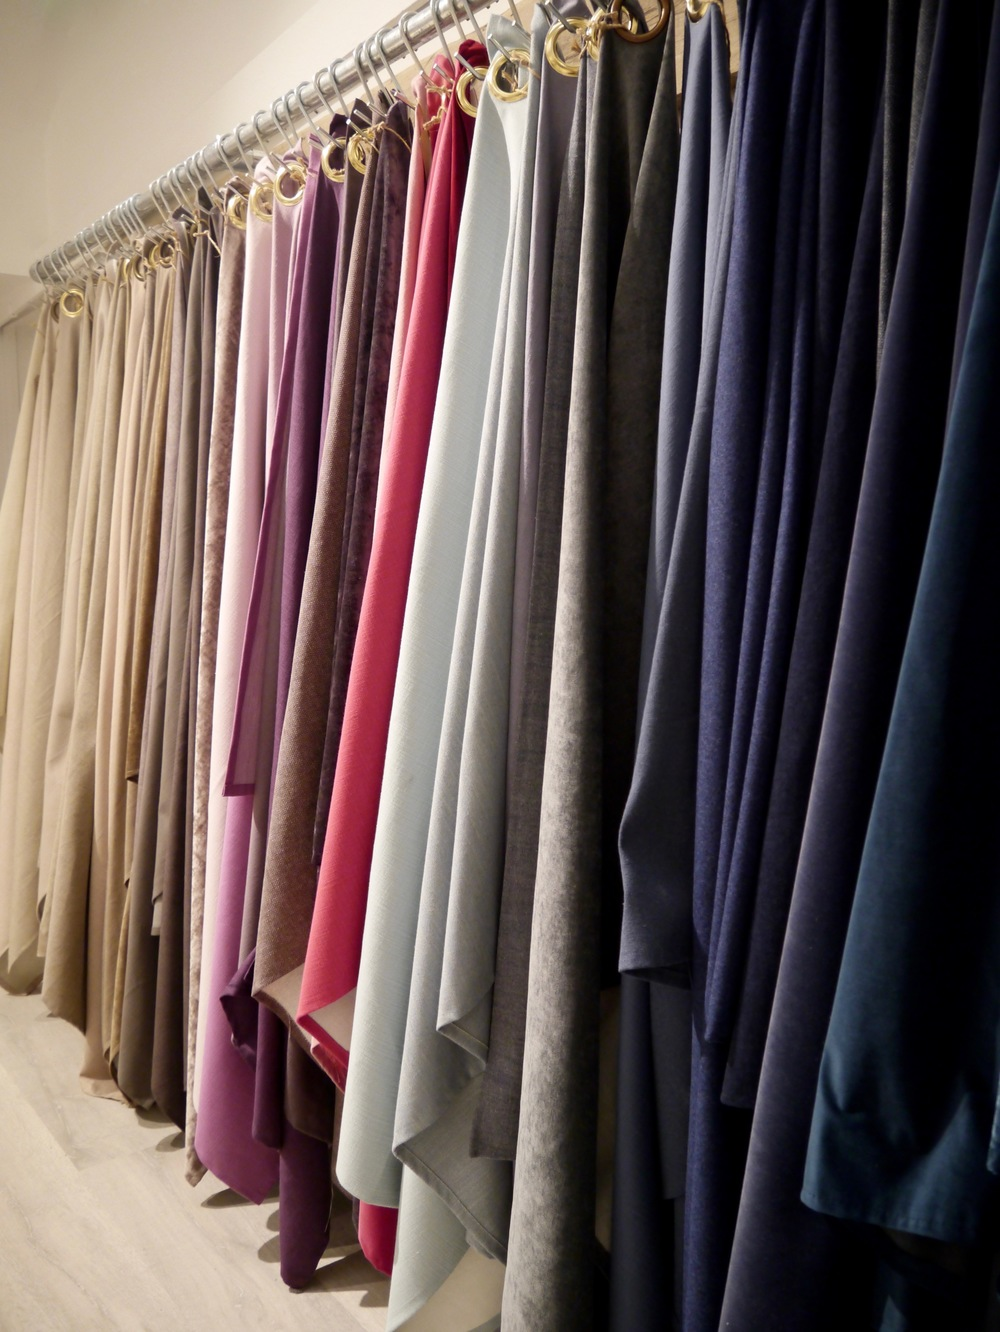 Beautiful Fabric Swatches at Button and Sprung Showroom by Smartstyle Interiors.jpg